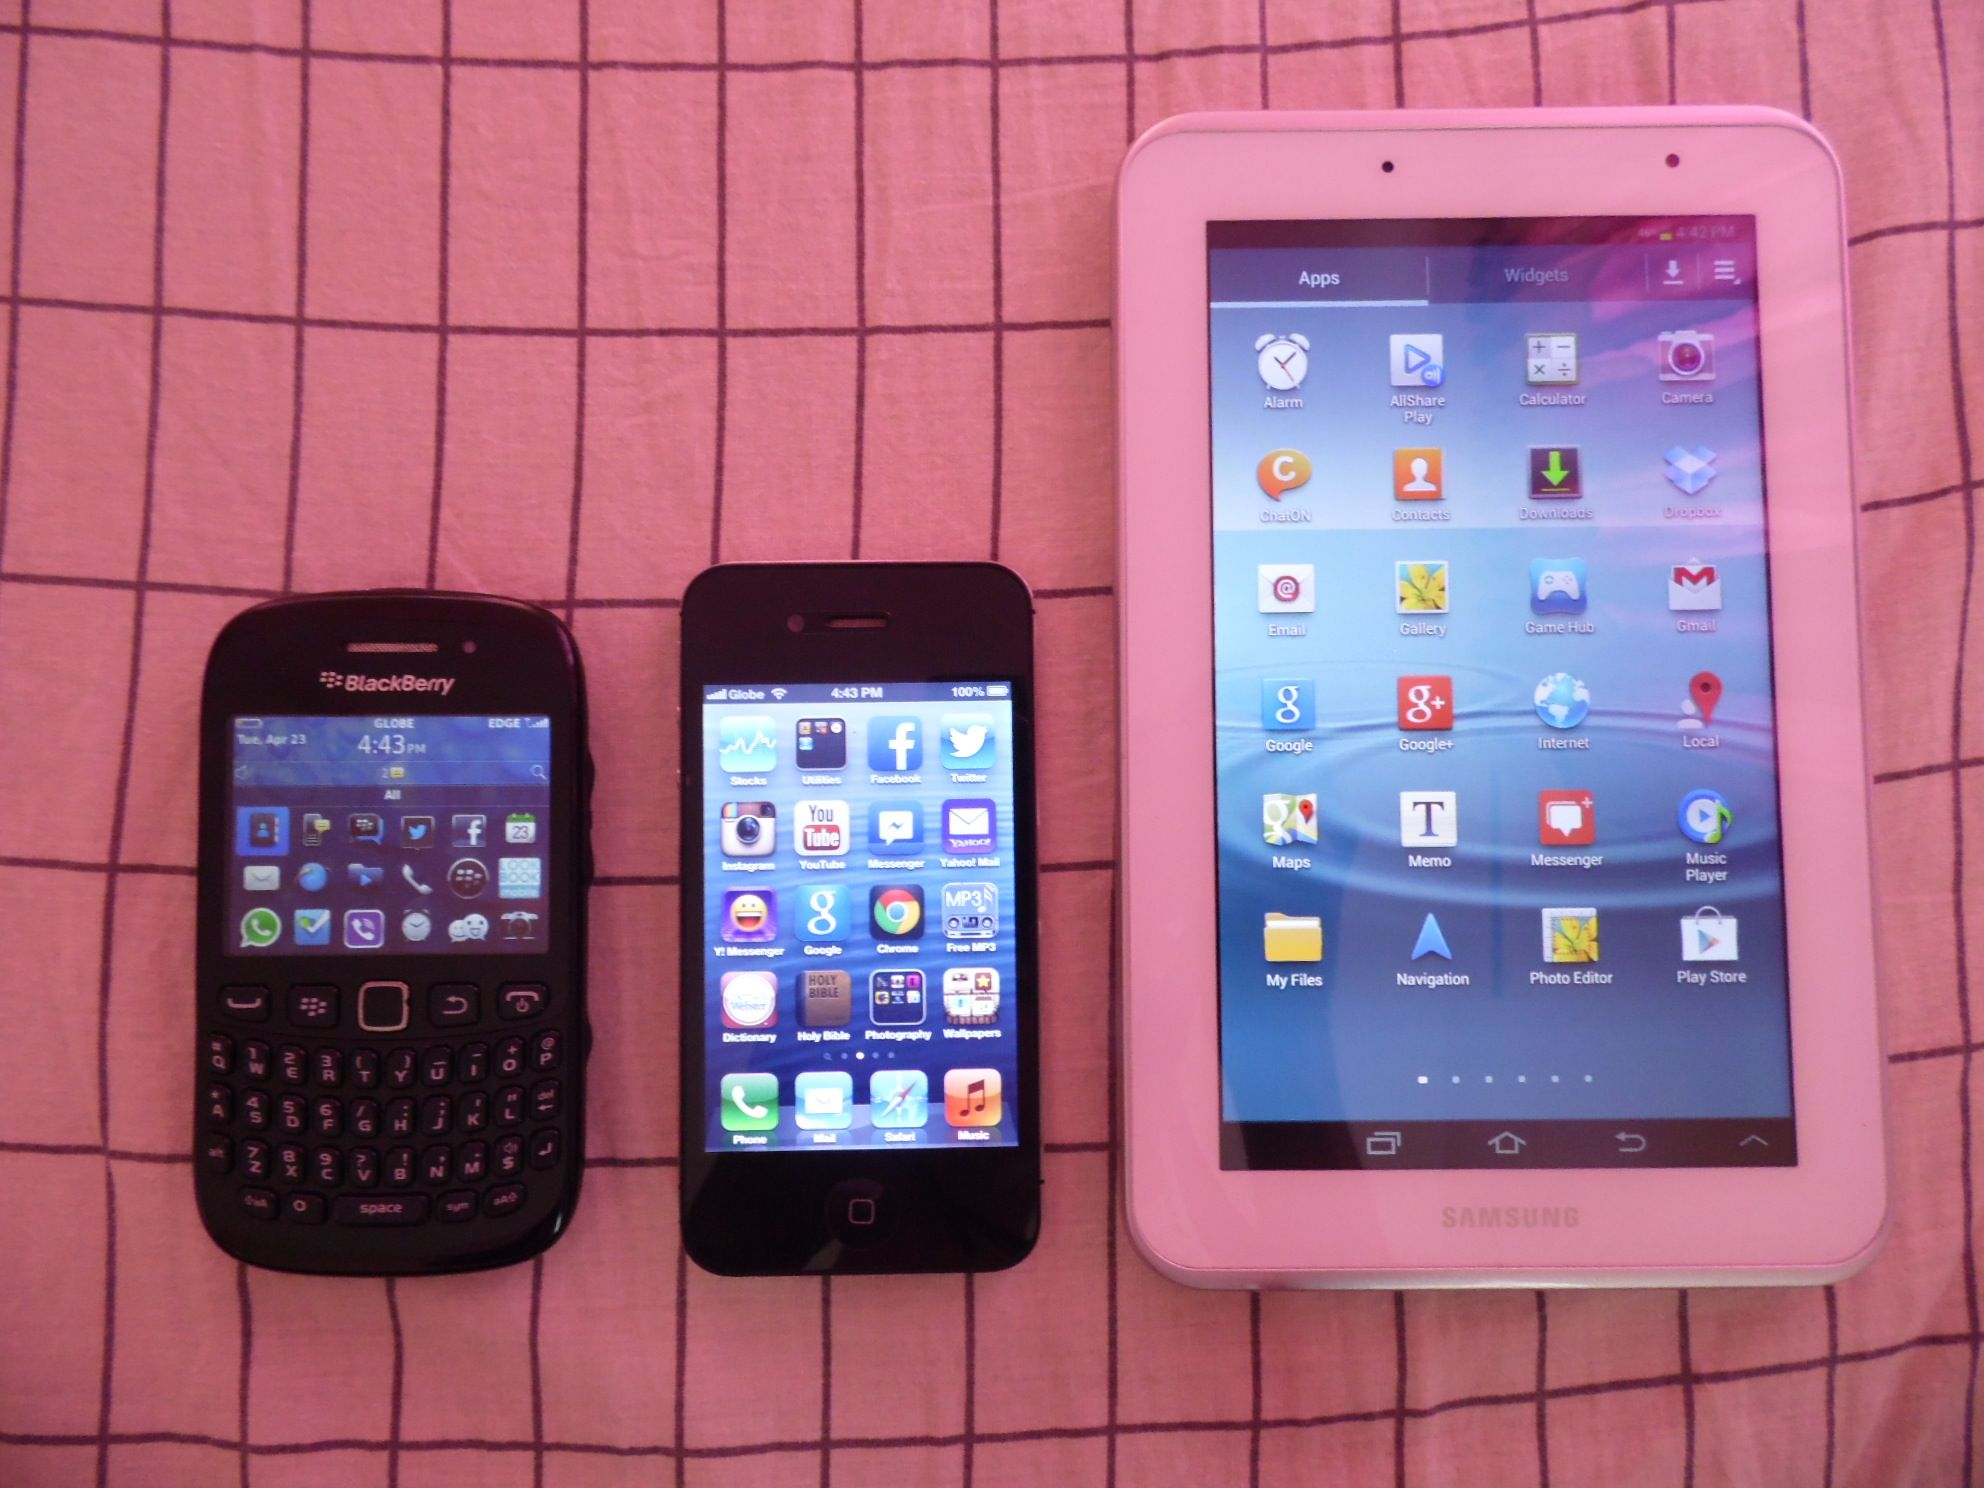 BlackBerry 9220, iPhone 4s & Samsung Galaxy Tab 2 7.0